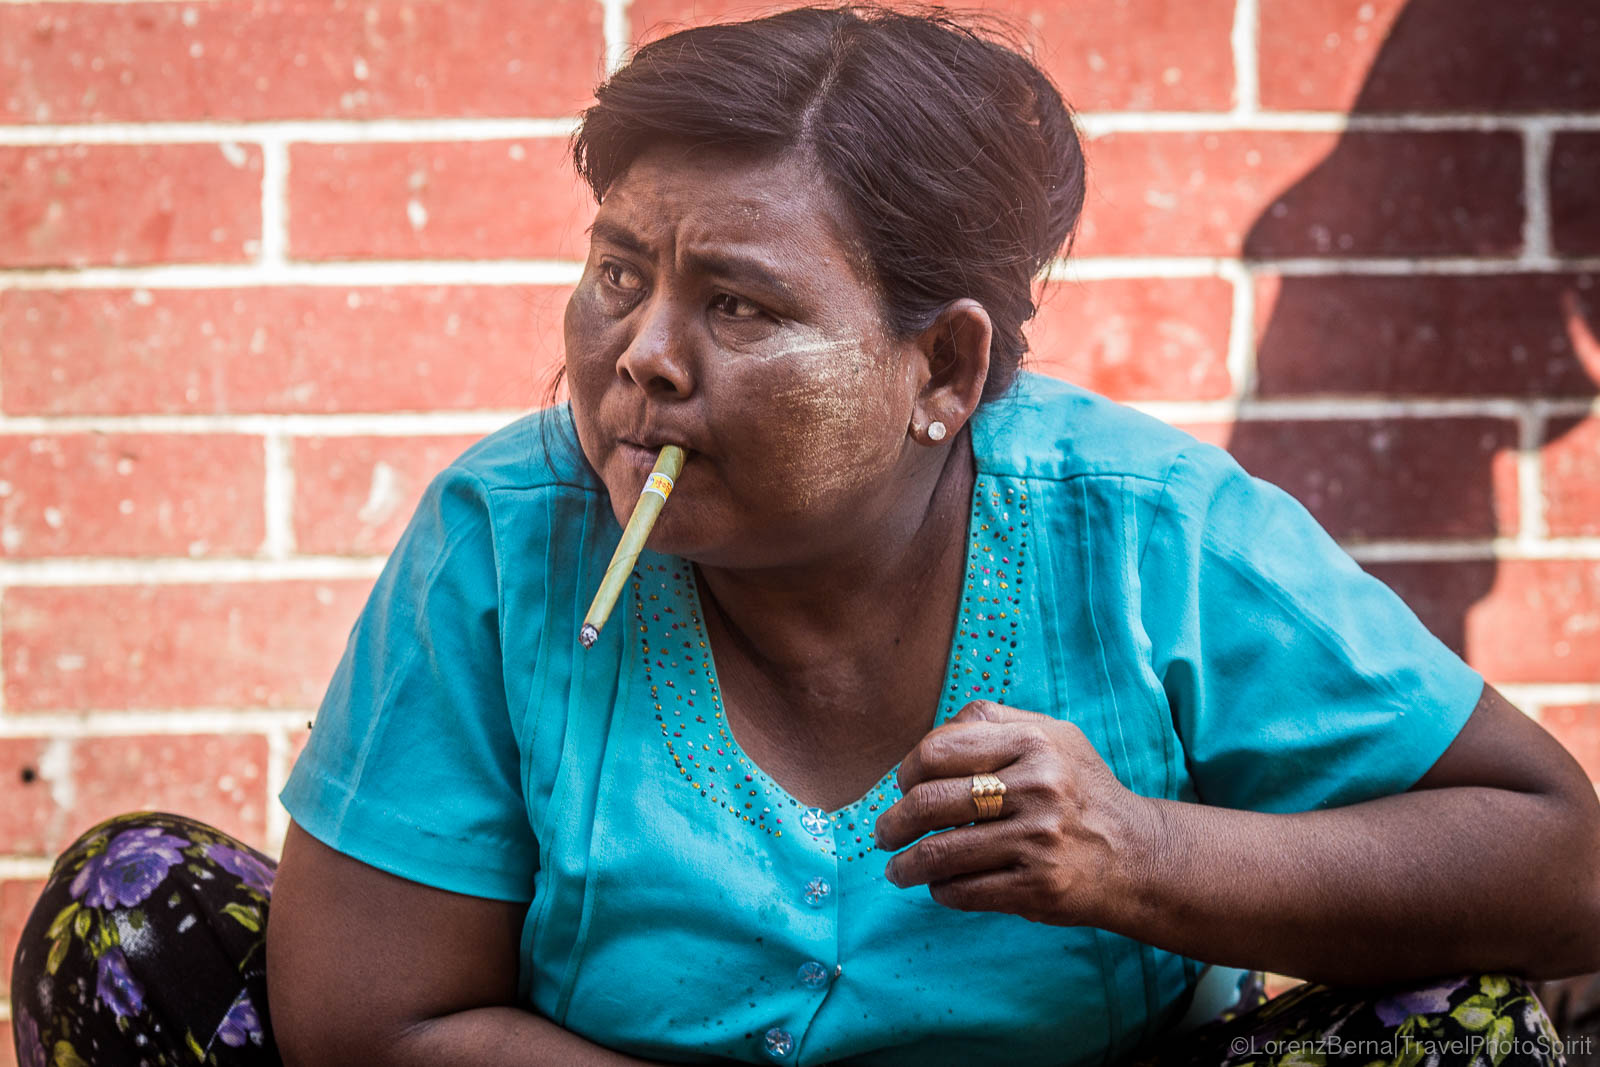 Burmese woman smoking local tobacco.